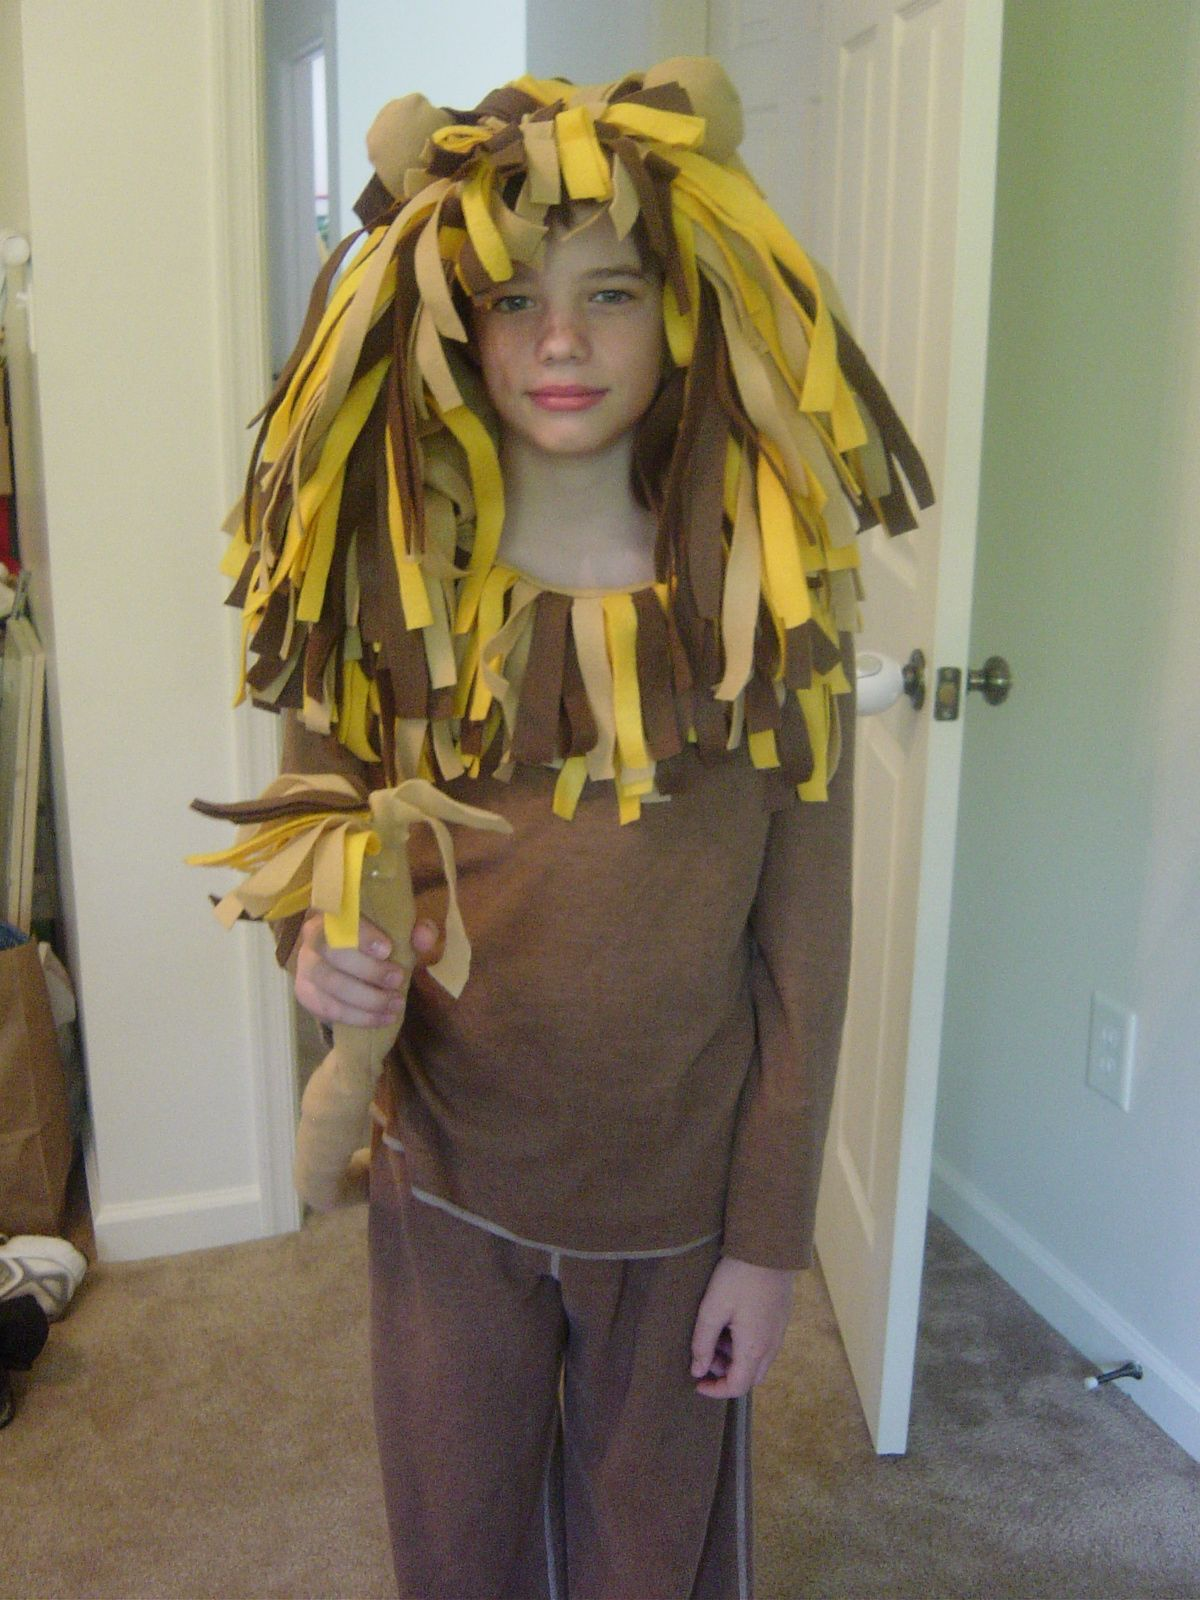 The lion costume pinterest costumes lions and mardi gras costume for carnavale mardi gras in france on tues 21 feblooks like i need to learn to sew this weekend solutioingenieria Image collections